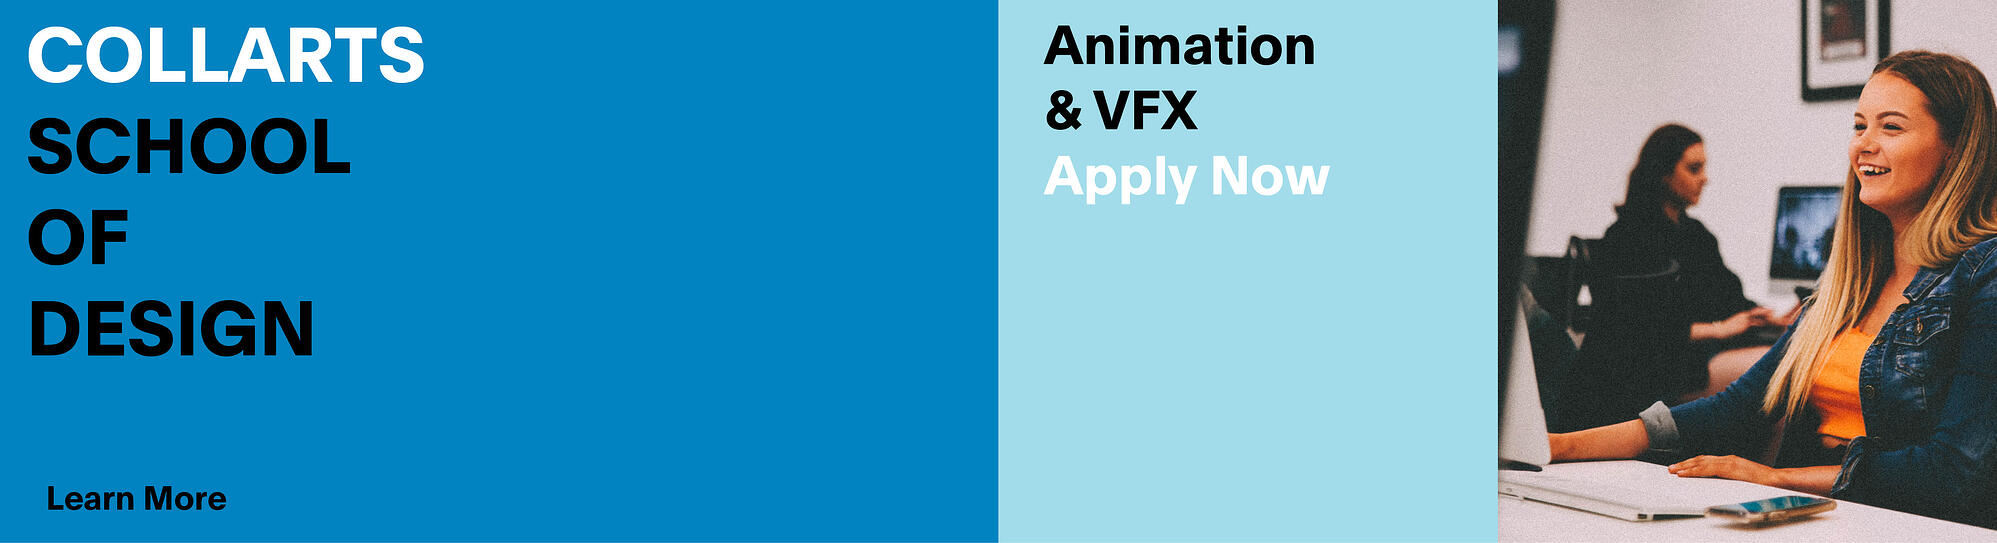 Banner - Animation & VFX